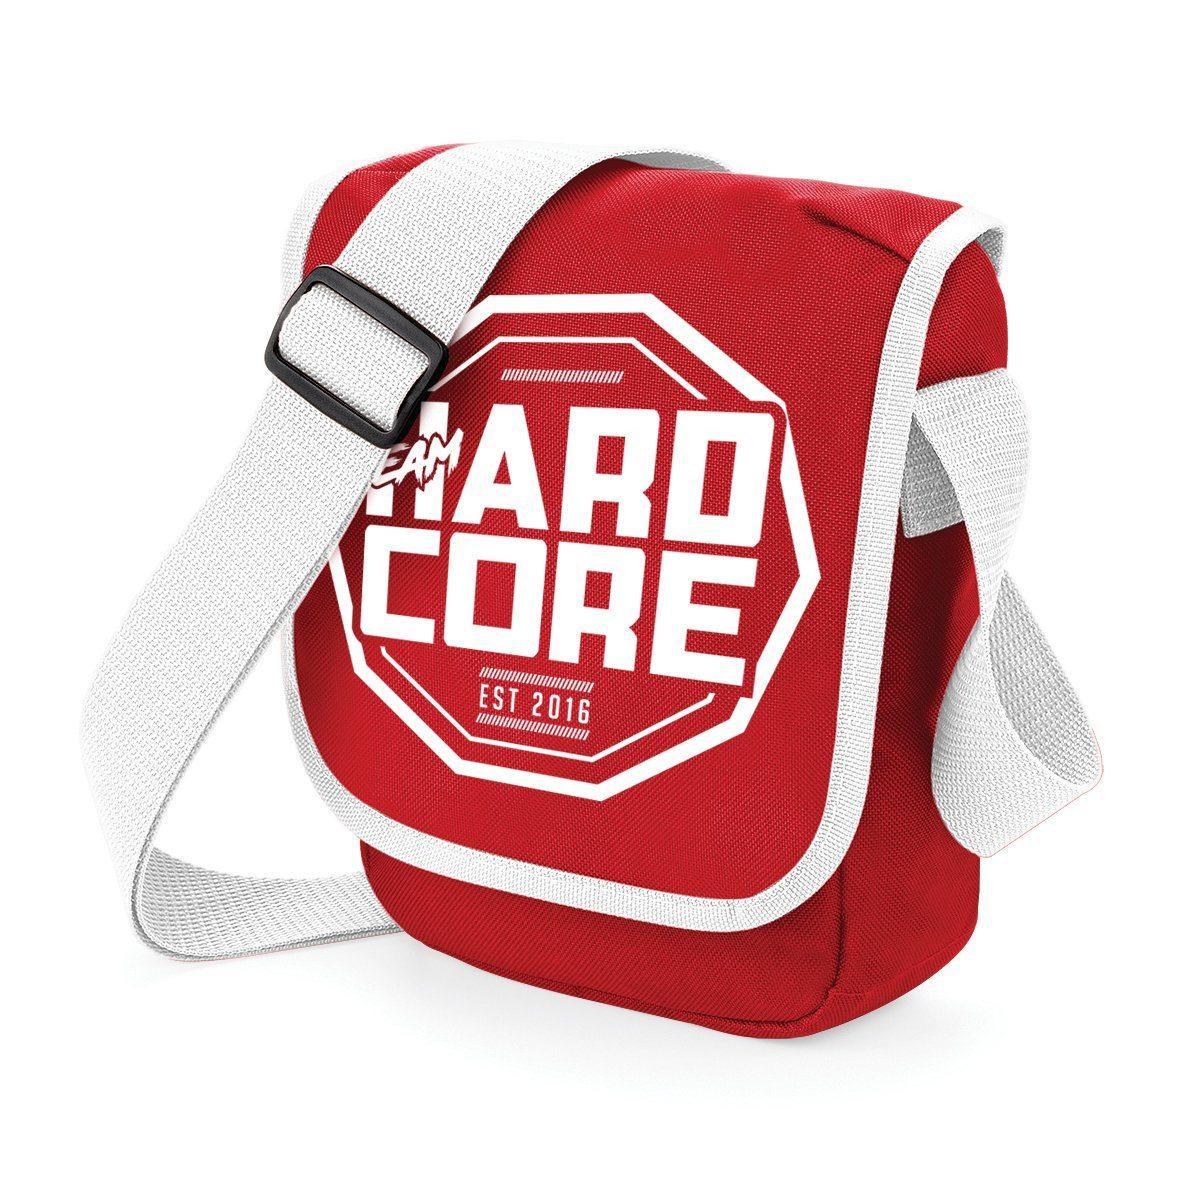 Team Hardcore Headphone Bag Bag Team Hardcore Red / White